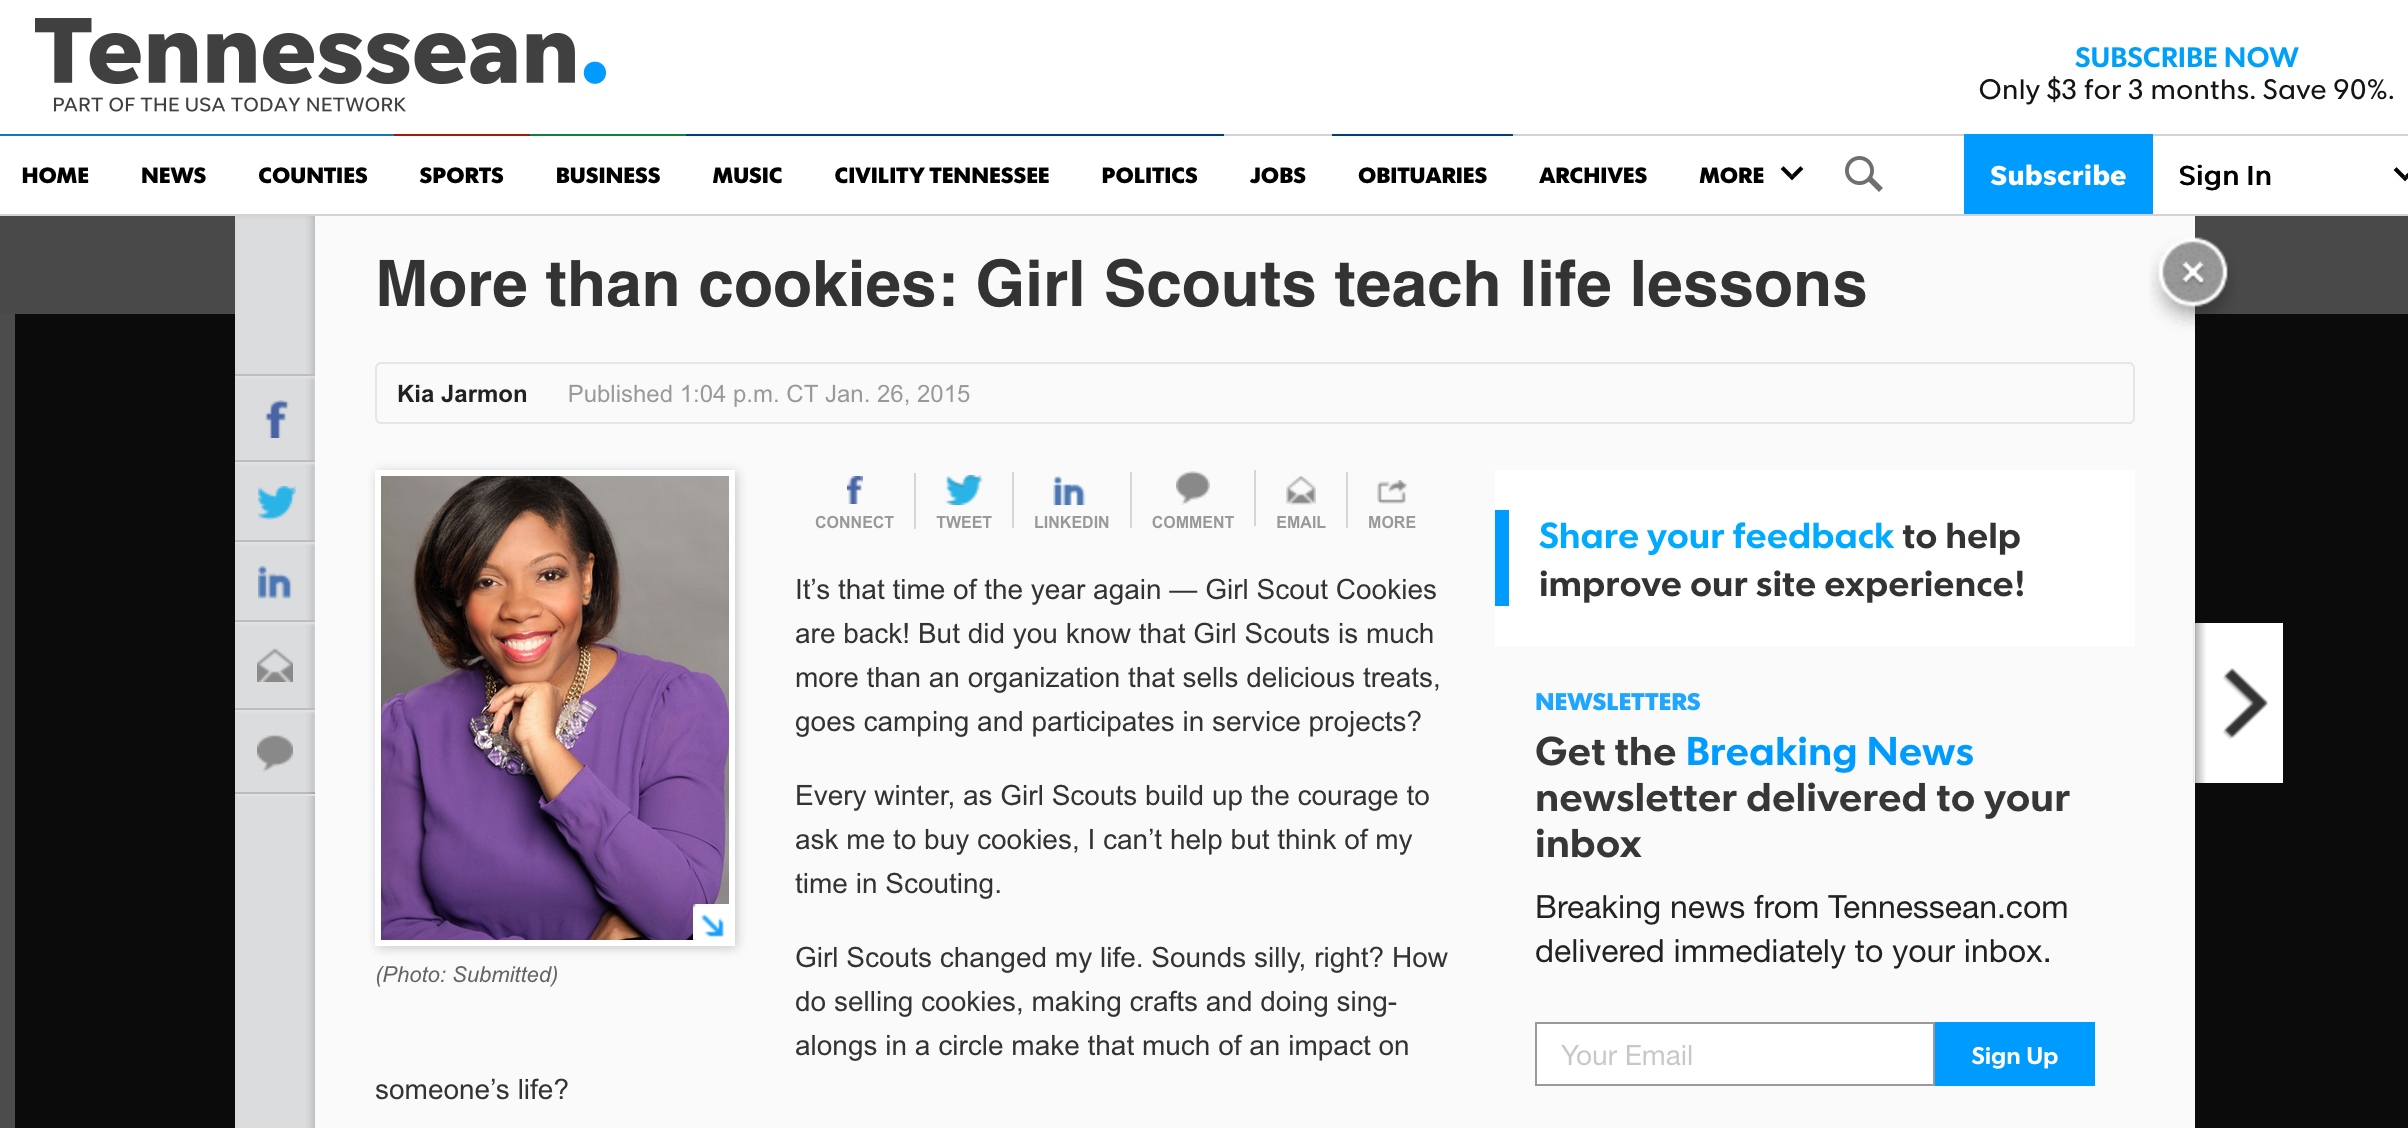 {Tennessean - More than cookies} - Girl Scouts changed my life. Read more from Kia's experience as a lifetime member of Girl Scouting.